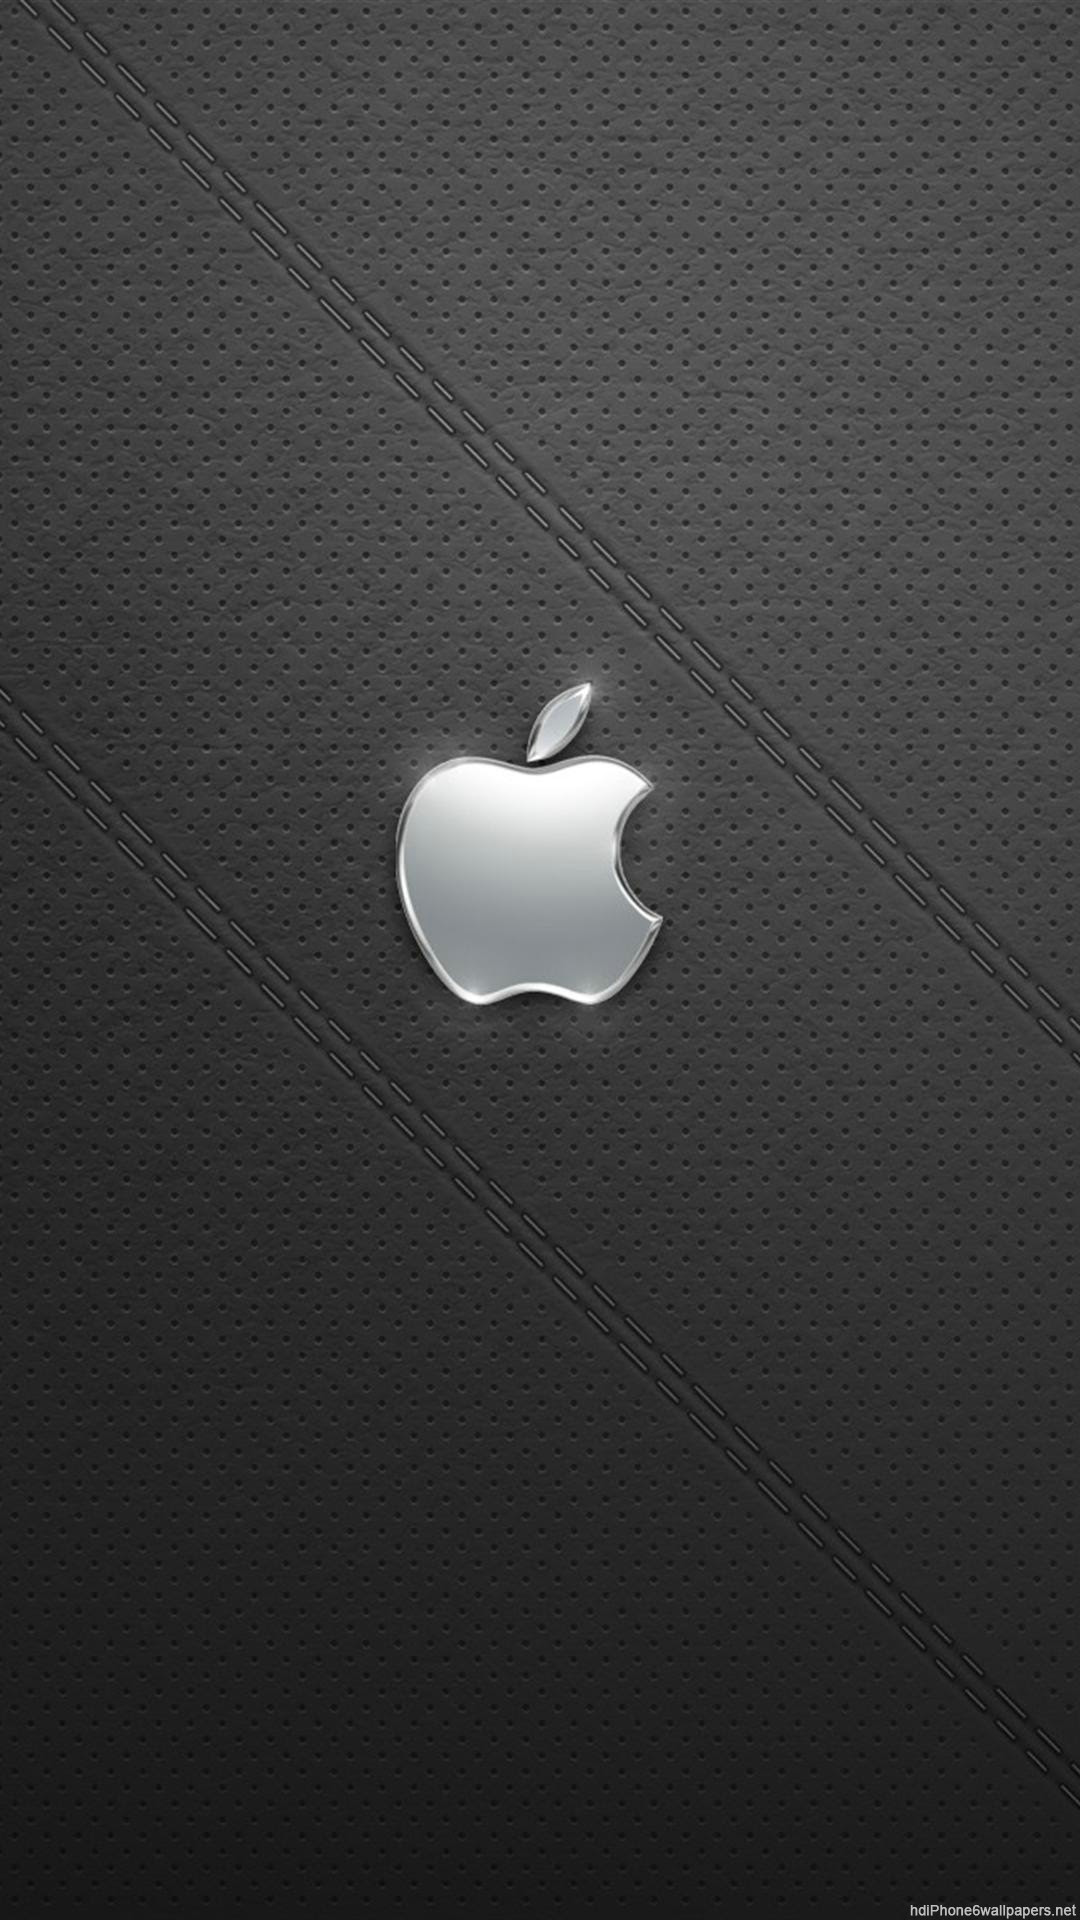 Unduh 400 Wallpaper Apple Black Iphone  Paling Baru